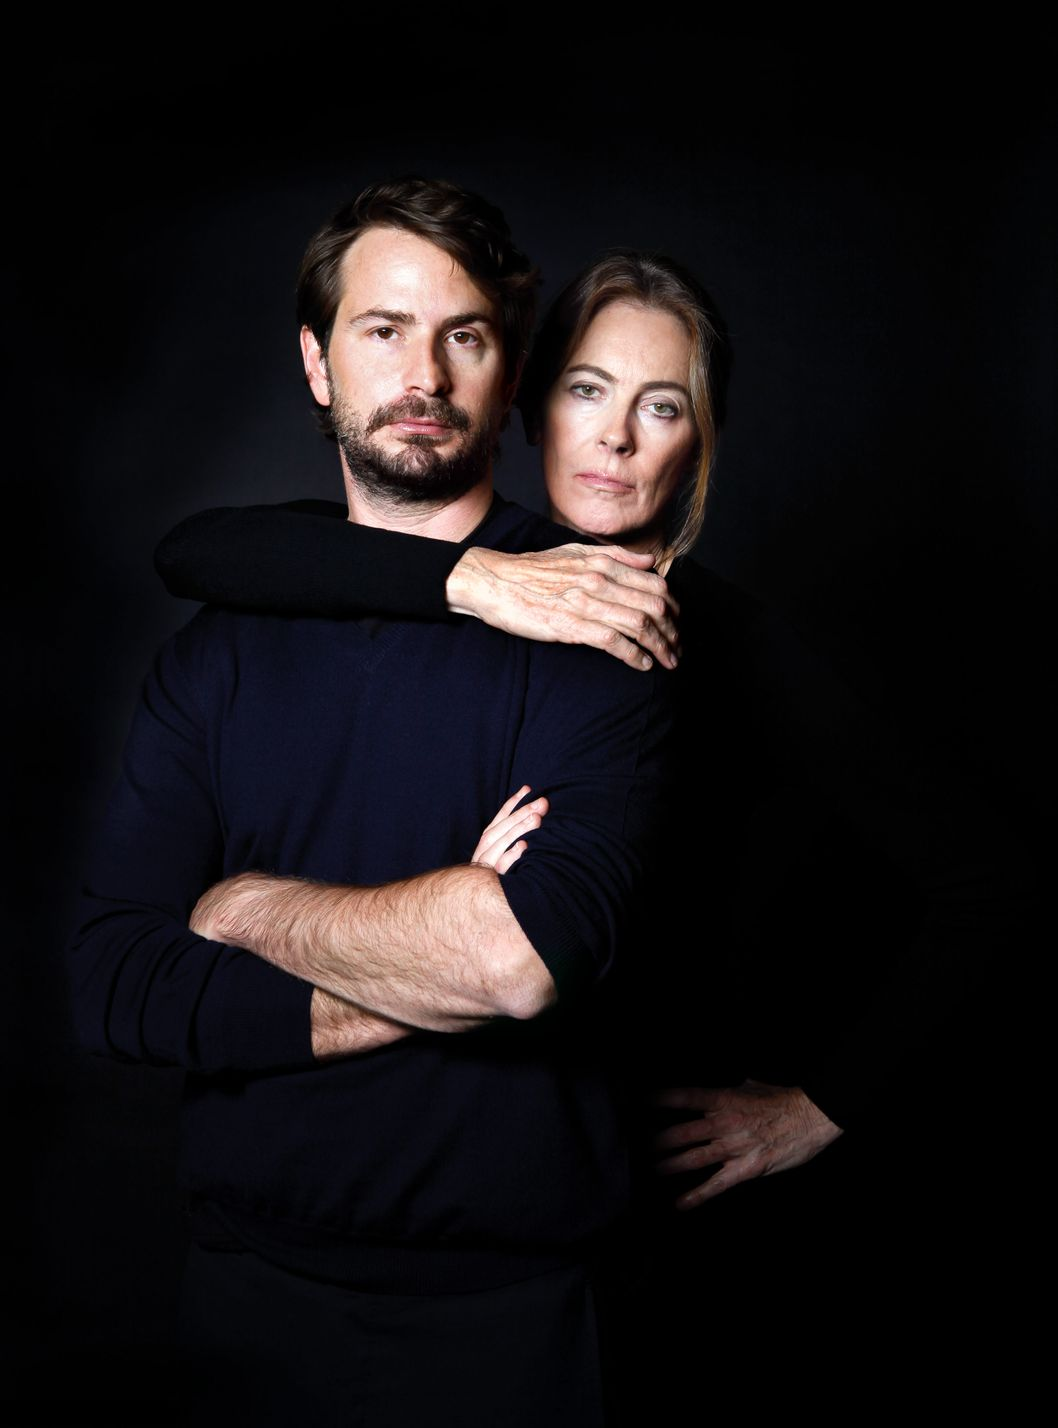 Portrait of Kathryn Bigelow and Mark Boal